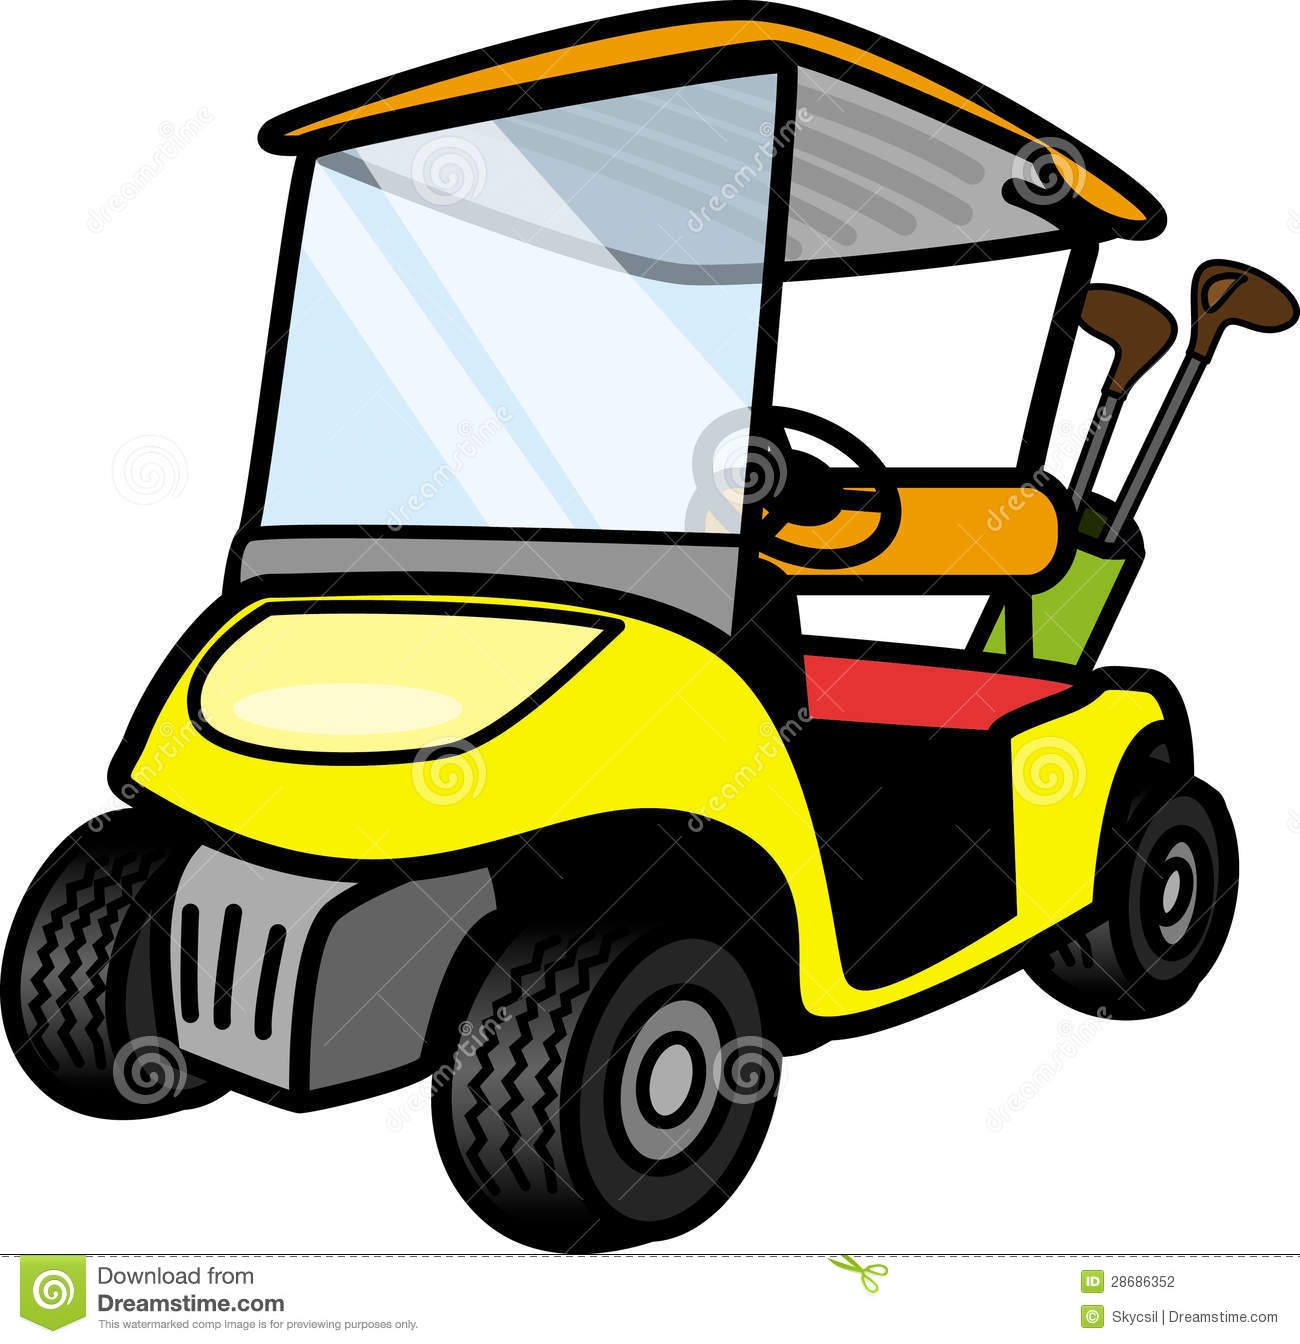 Cartoon Golf Cart Clipart.